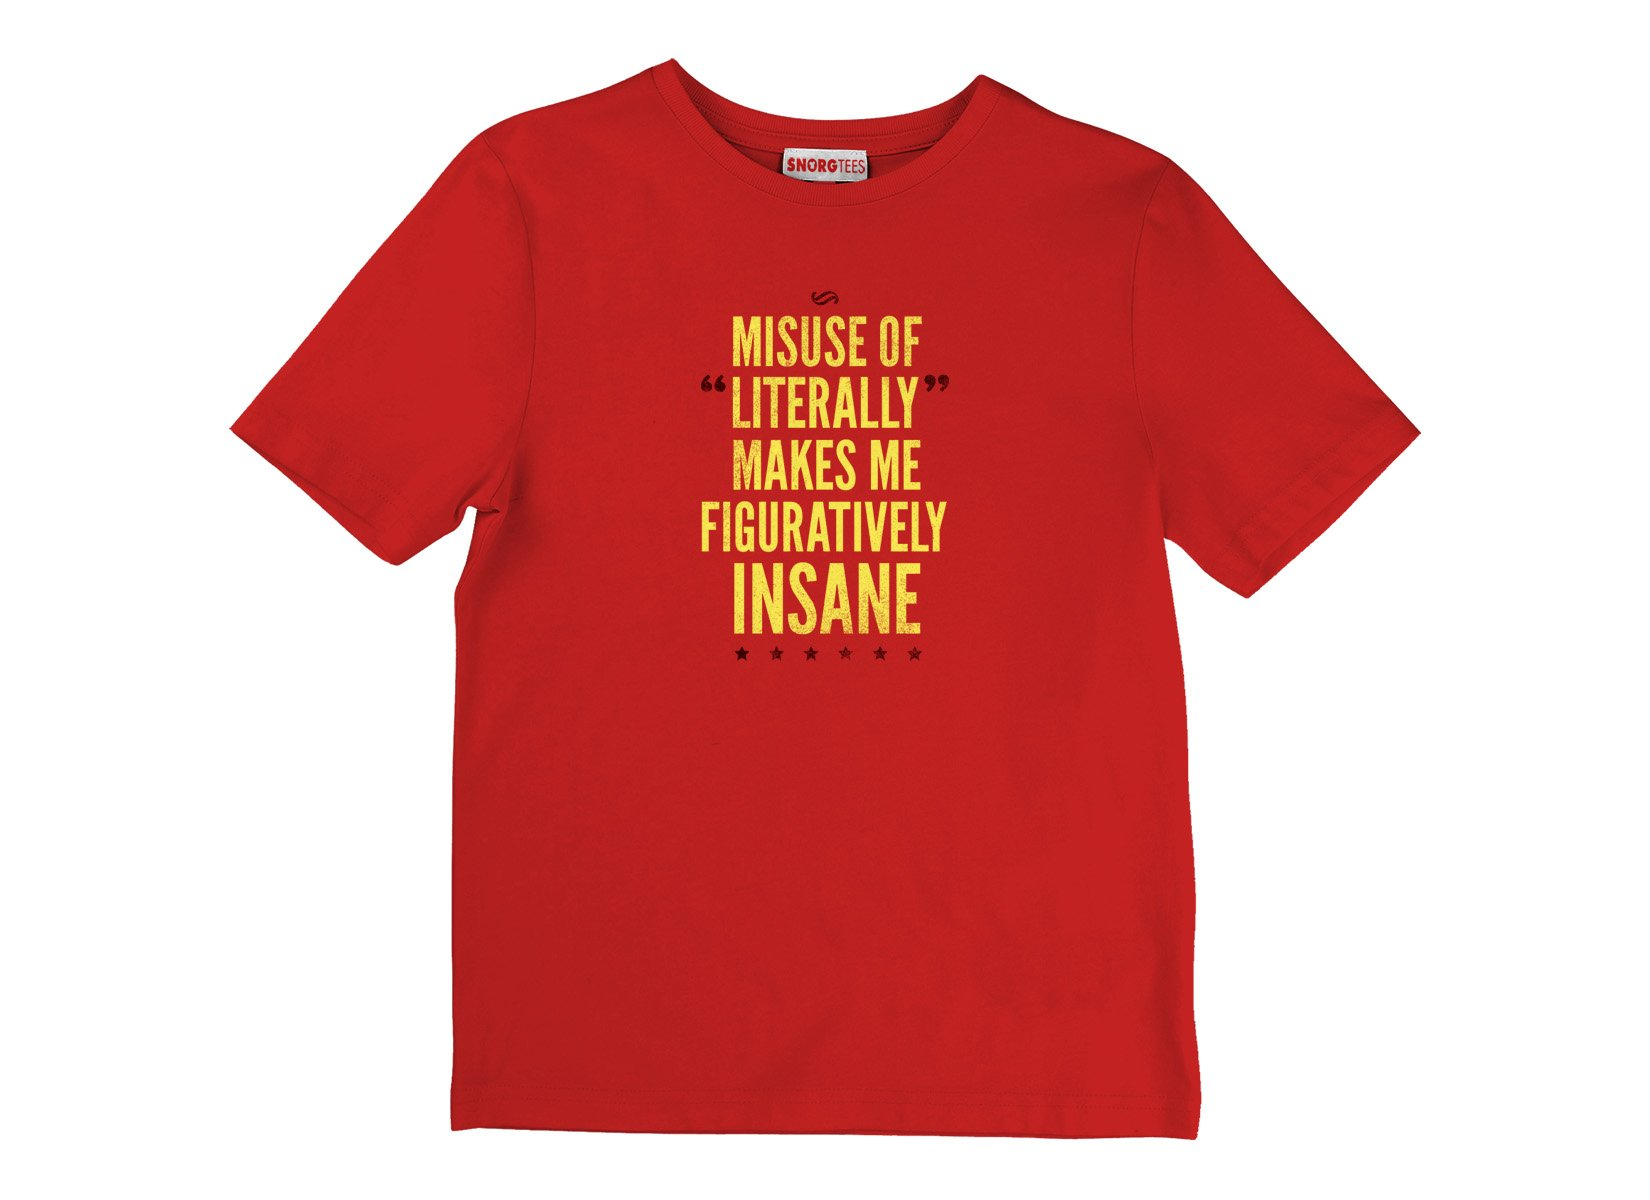 Misuse of Literally Makes Me Figuratively Insane on Kids T-Shirt